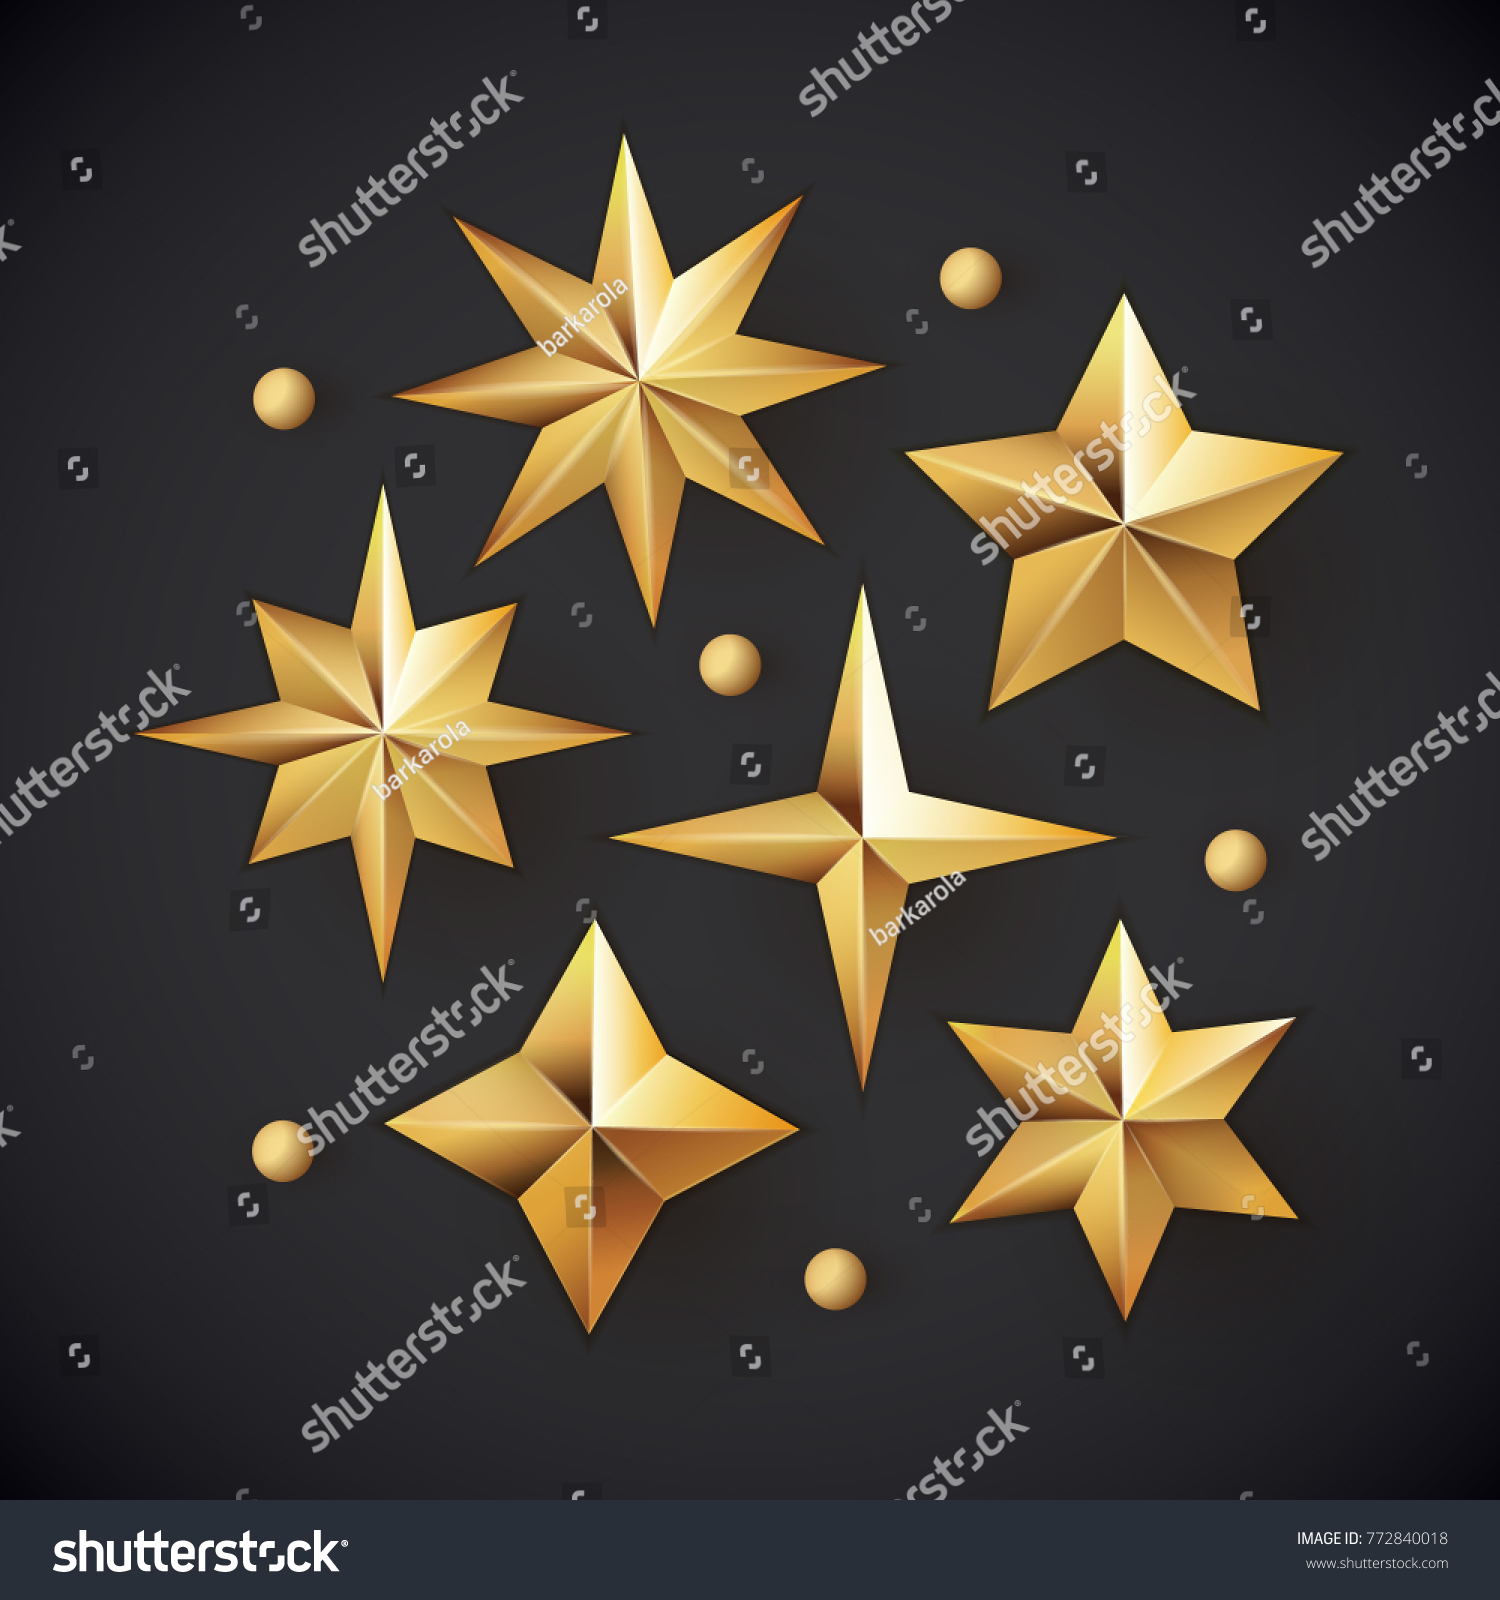 glowing realistic golden stars background isolated stock vector